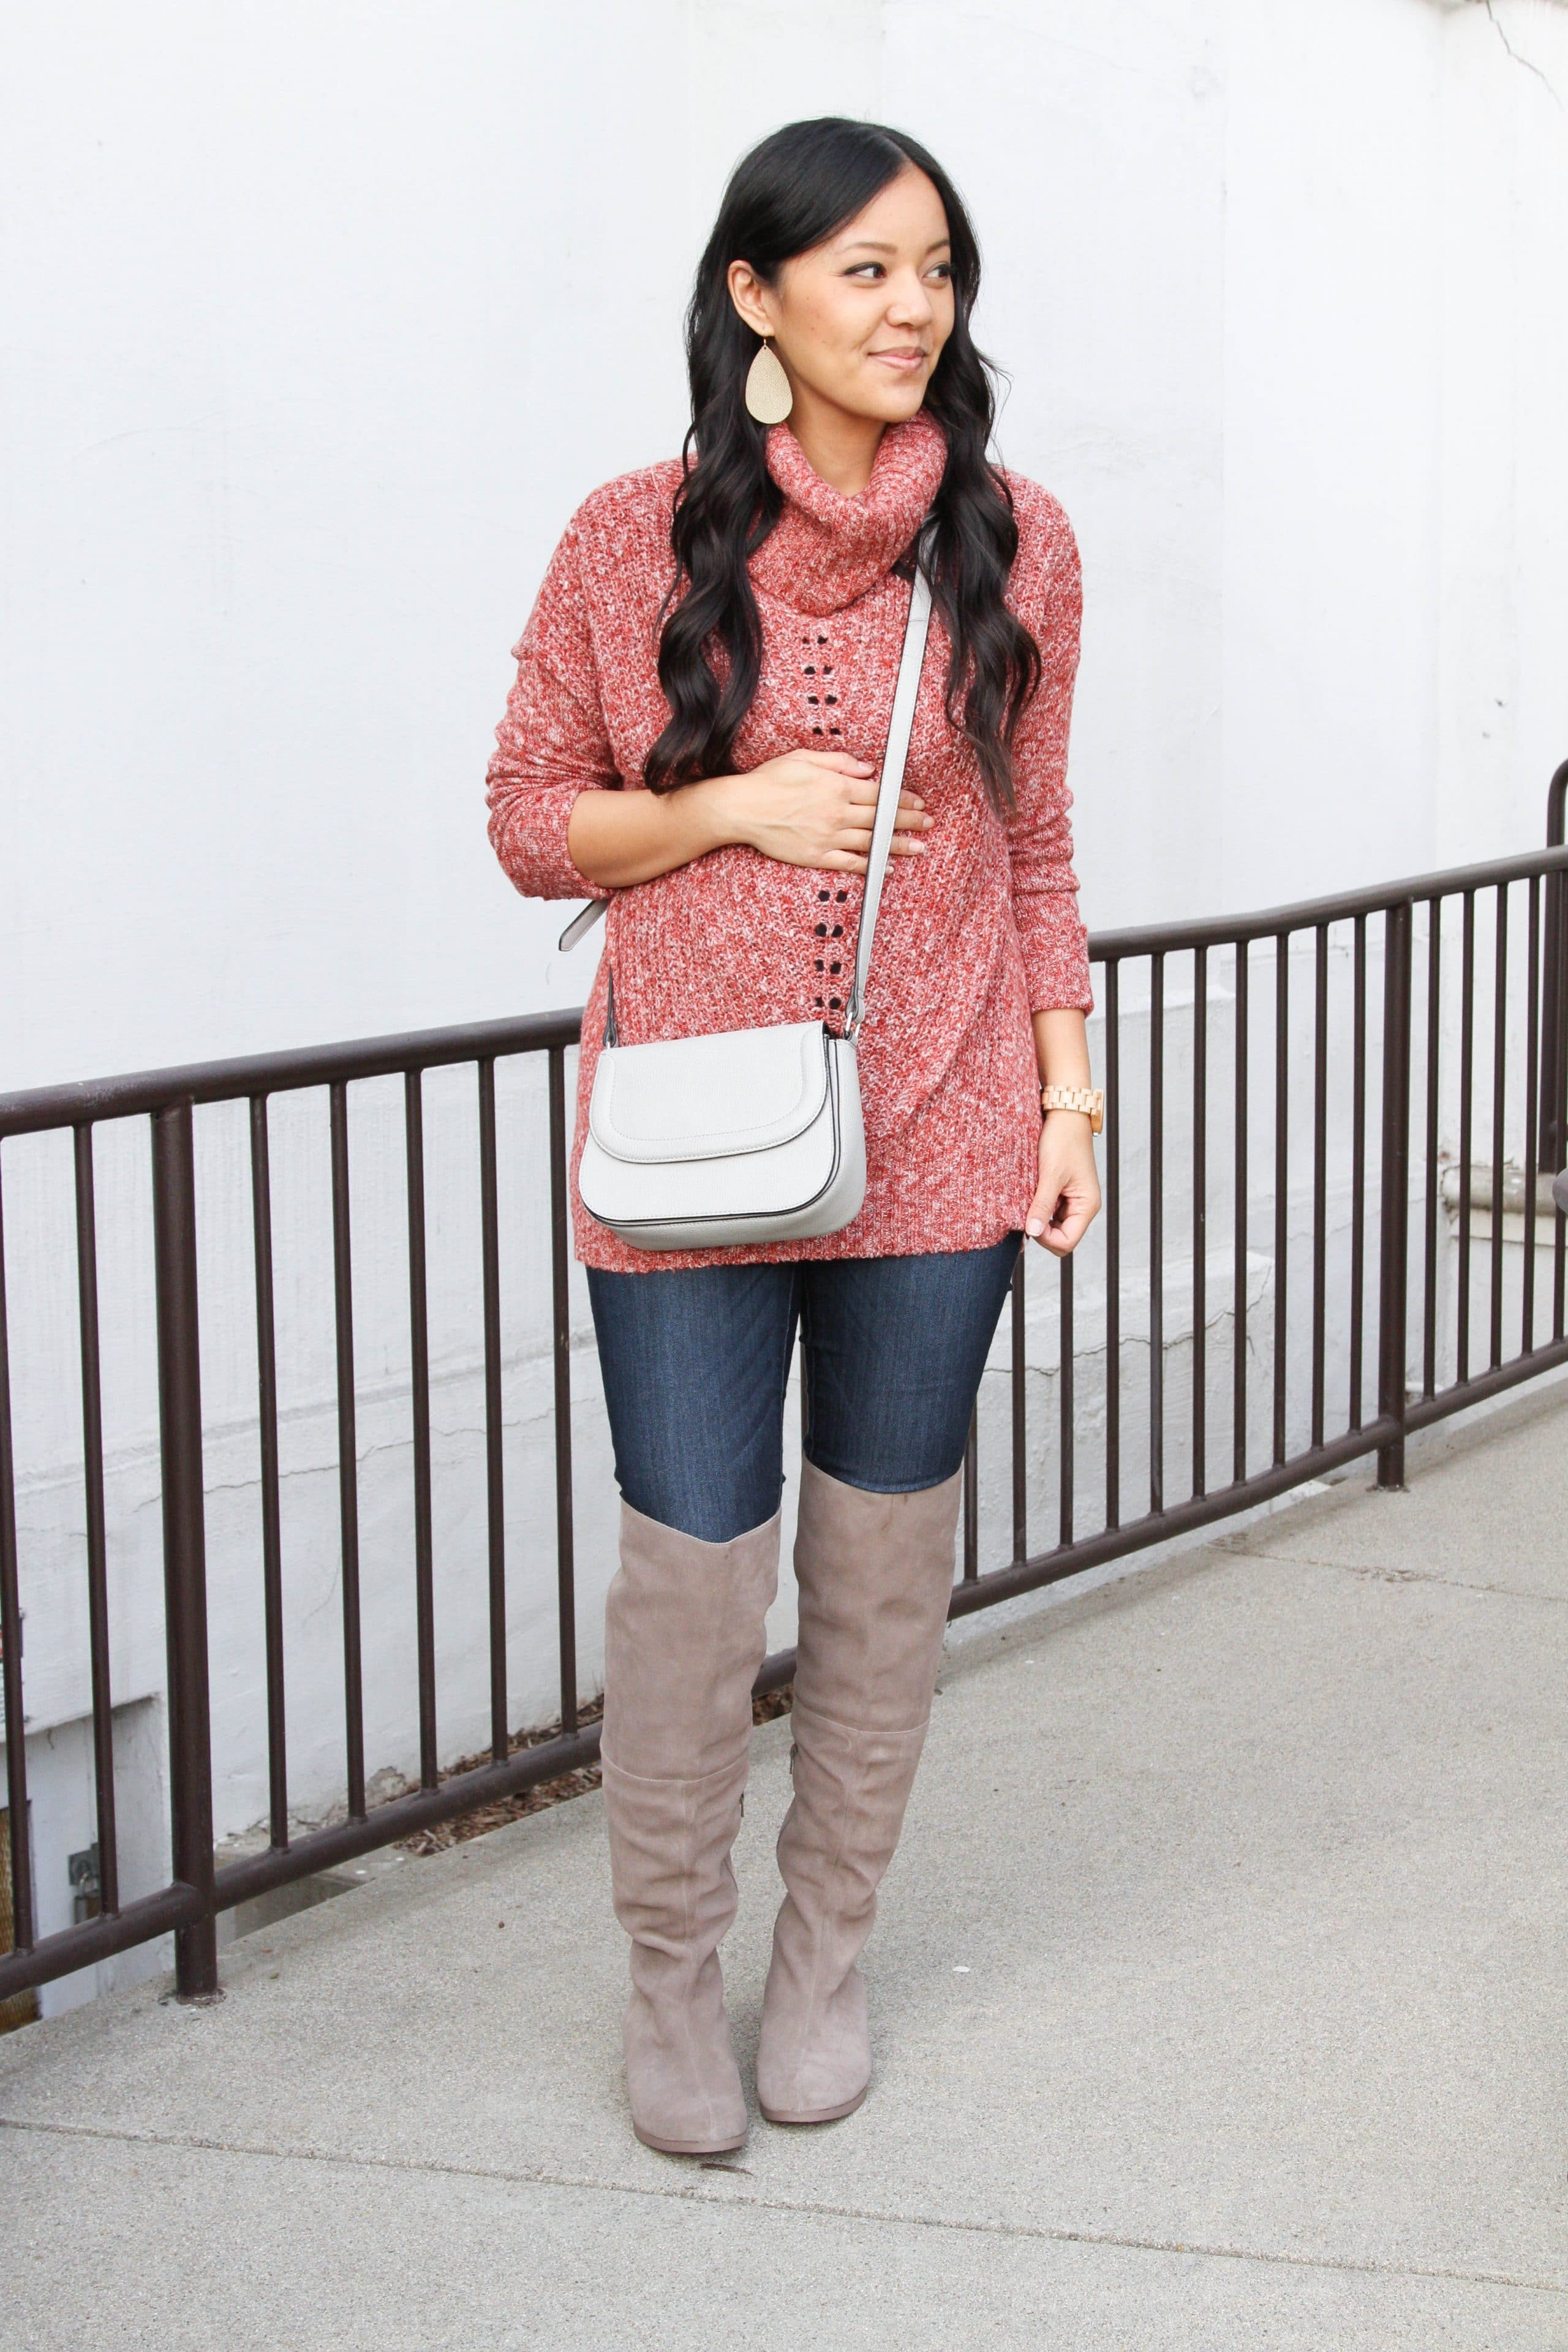 Tunic Sweater + Skinnies + Crossbody Bag + Statement Earrings + Over Knee Boots